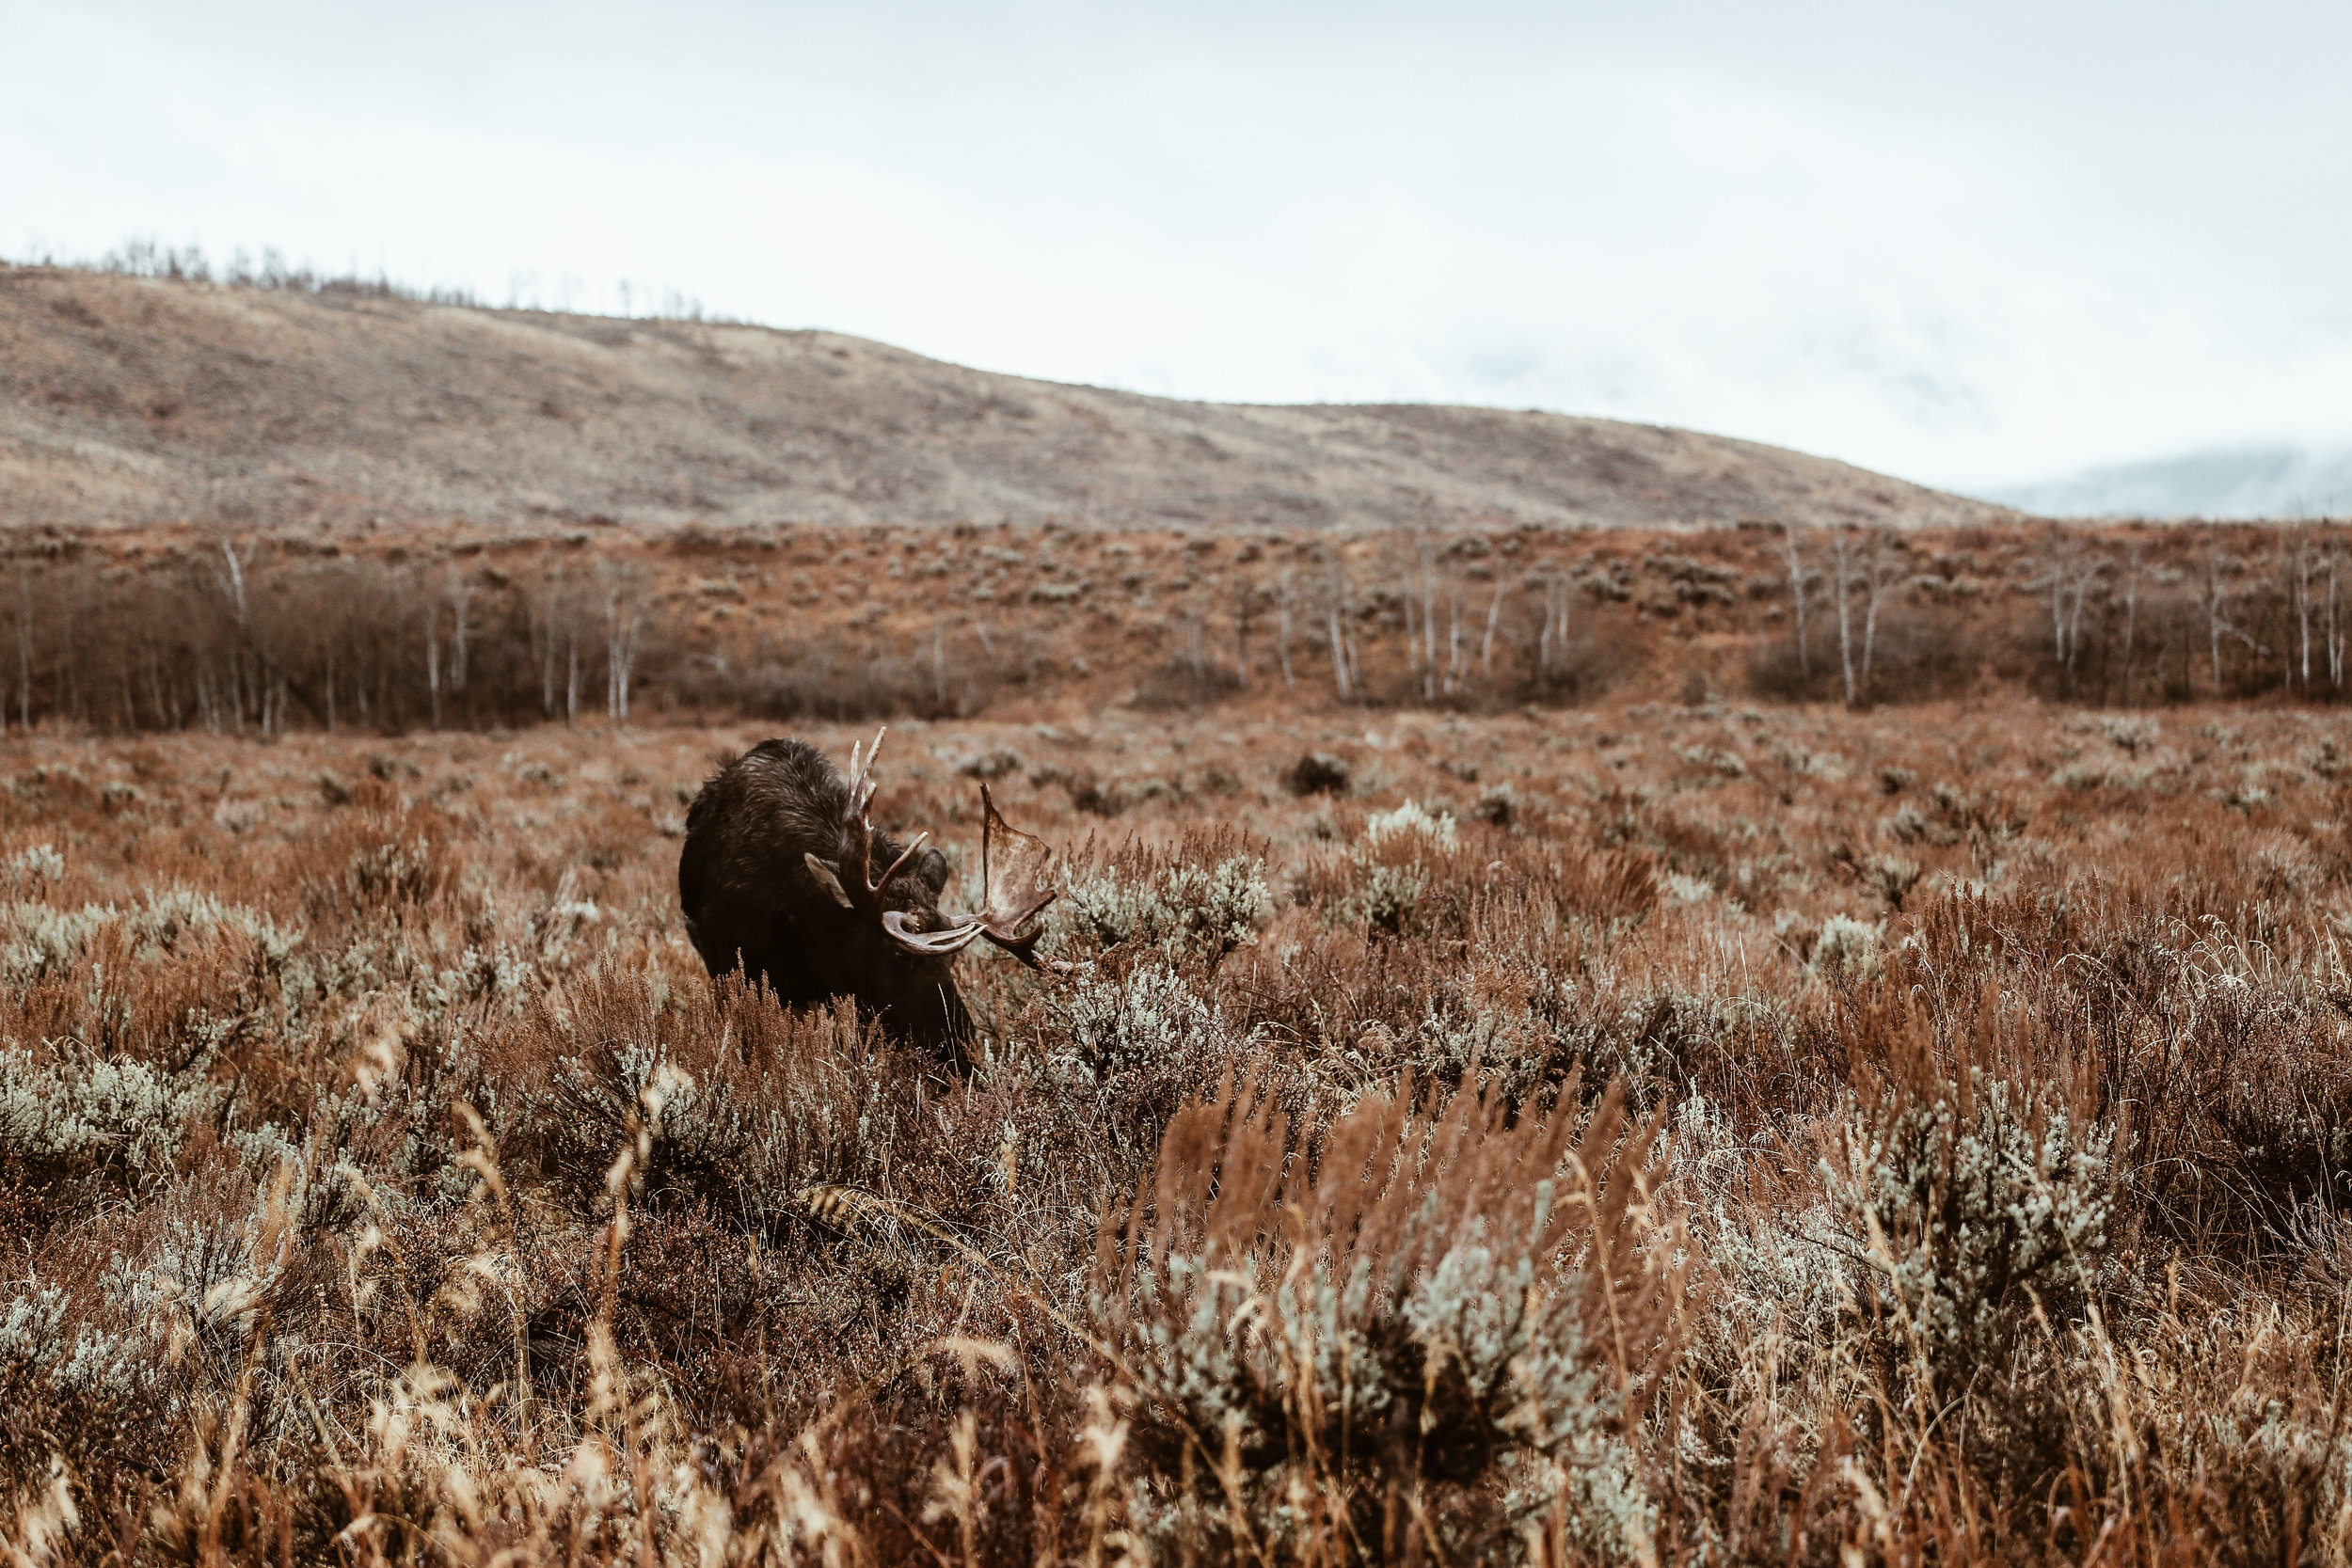 A moose spotted while on our Jackson Hole Wildlife Safari